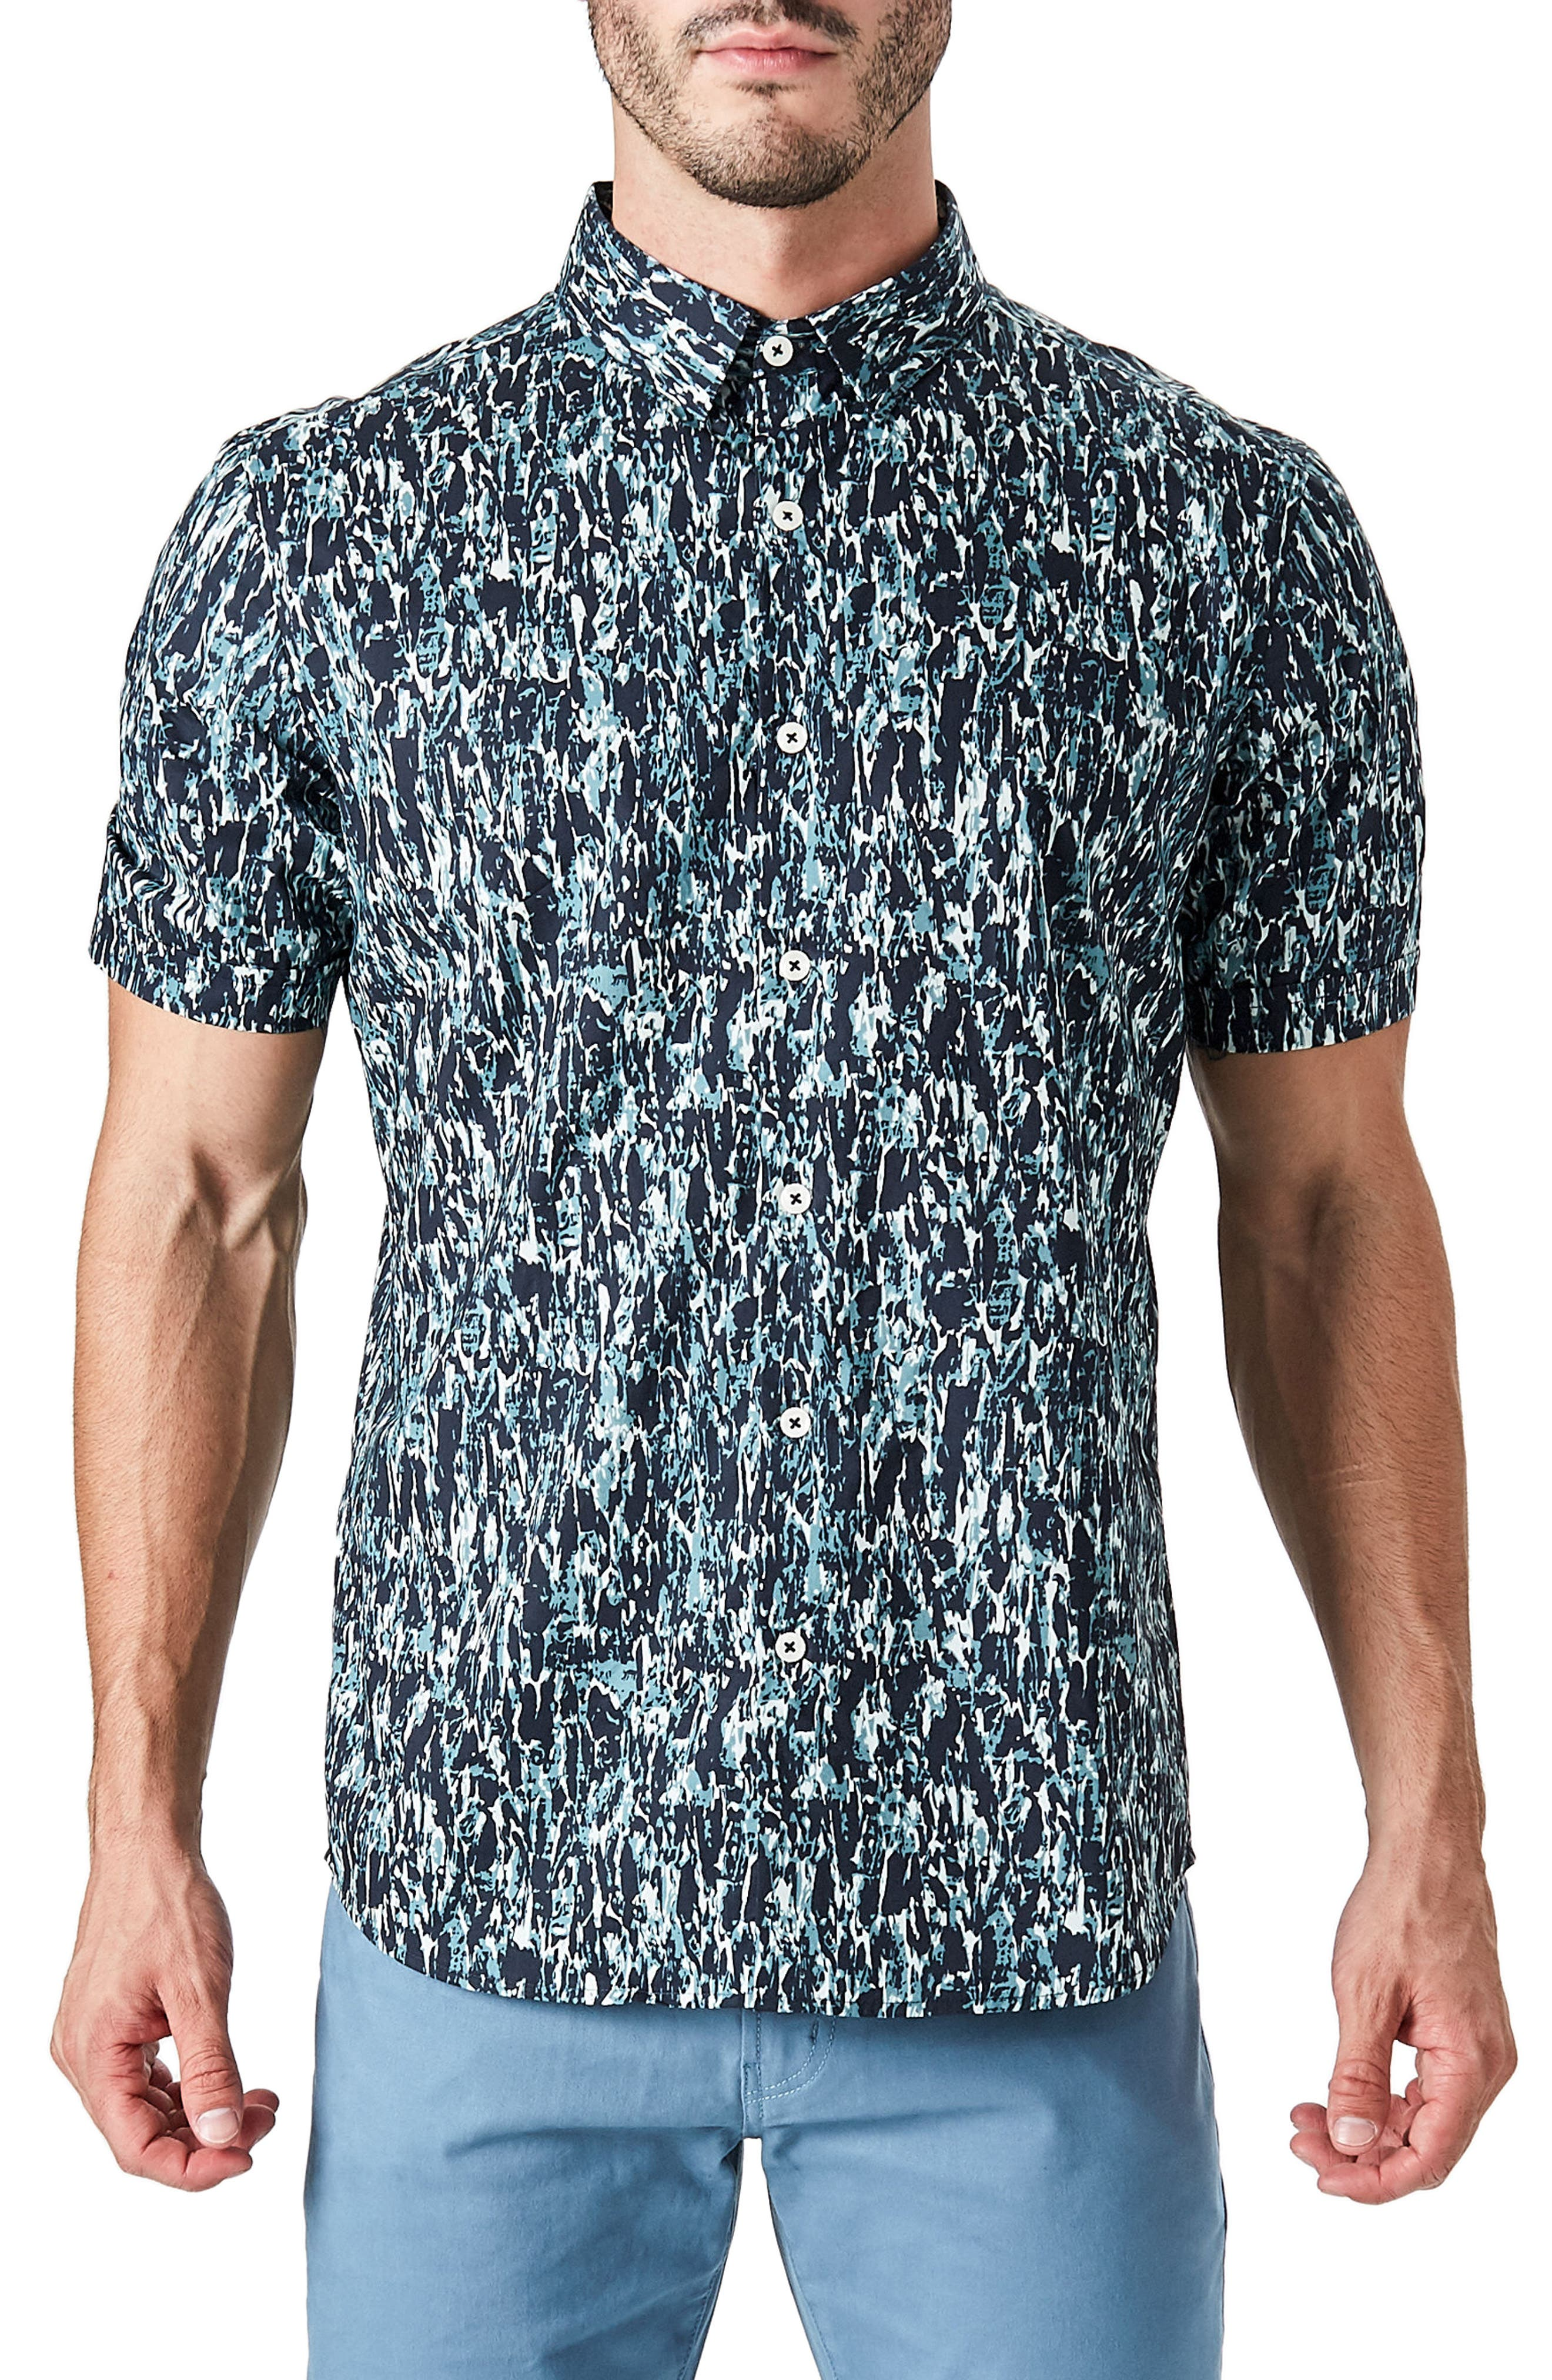 Universal Sound Woven Shirt,                             Main thumbnail 1, color,                             Midnight G